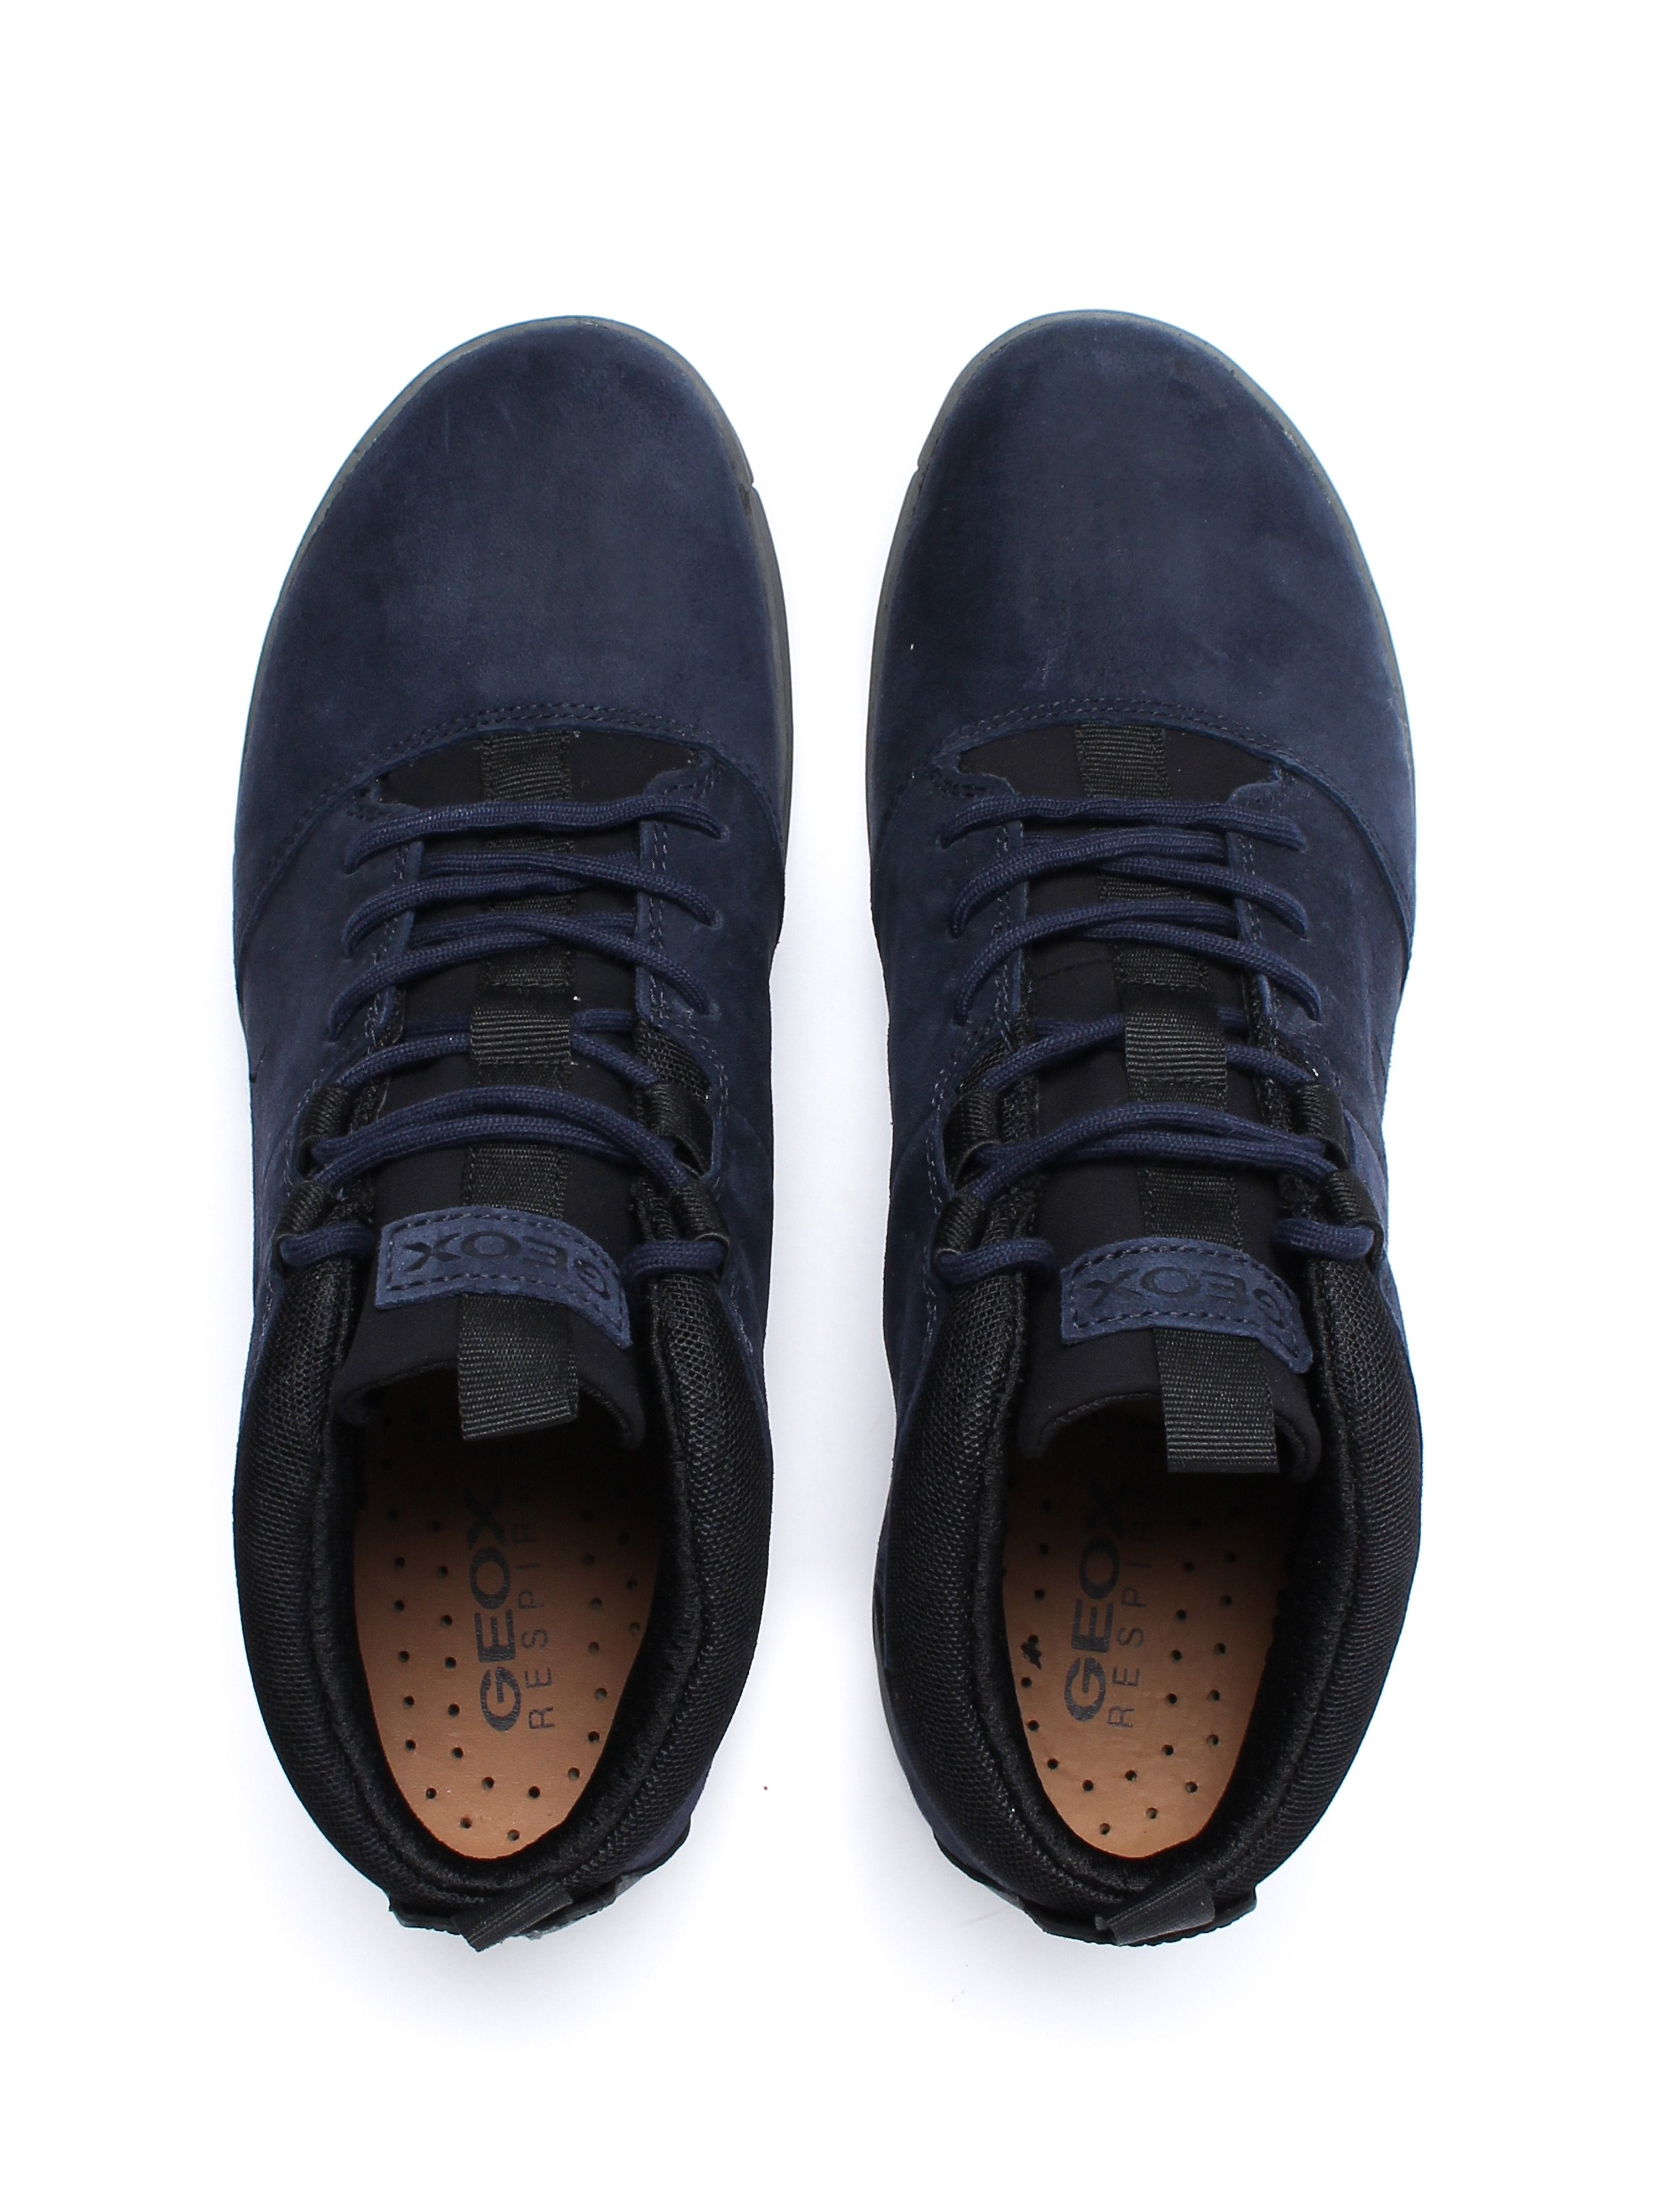 Geox Men's Nebula 4x4 Trainers - Navy Nubuck